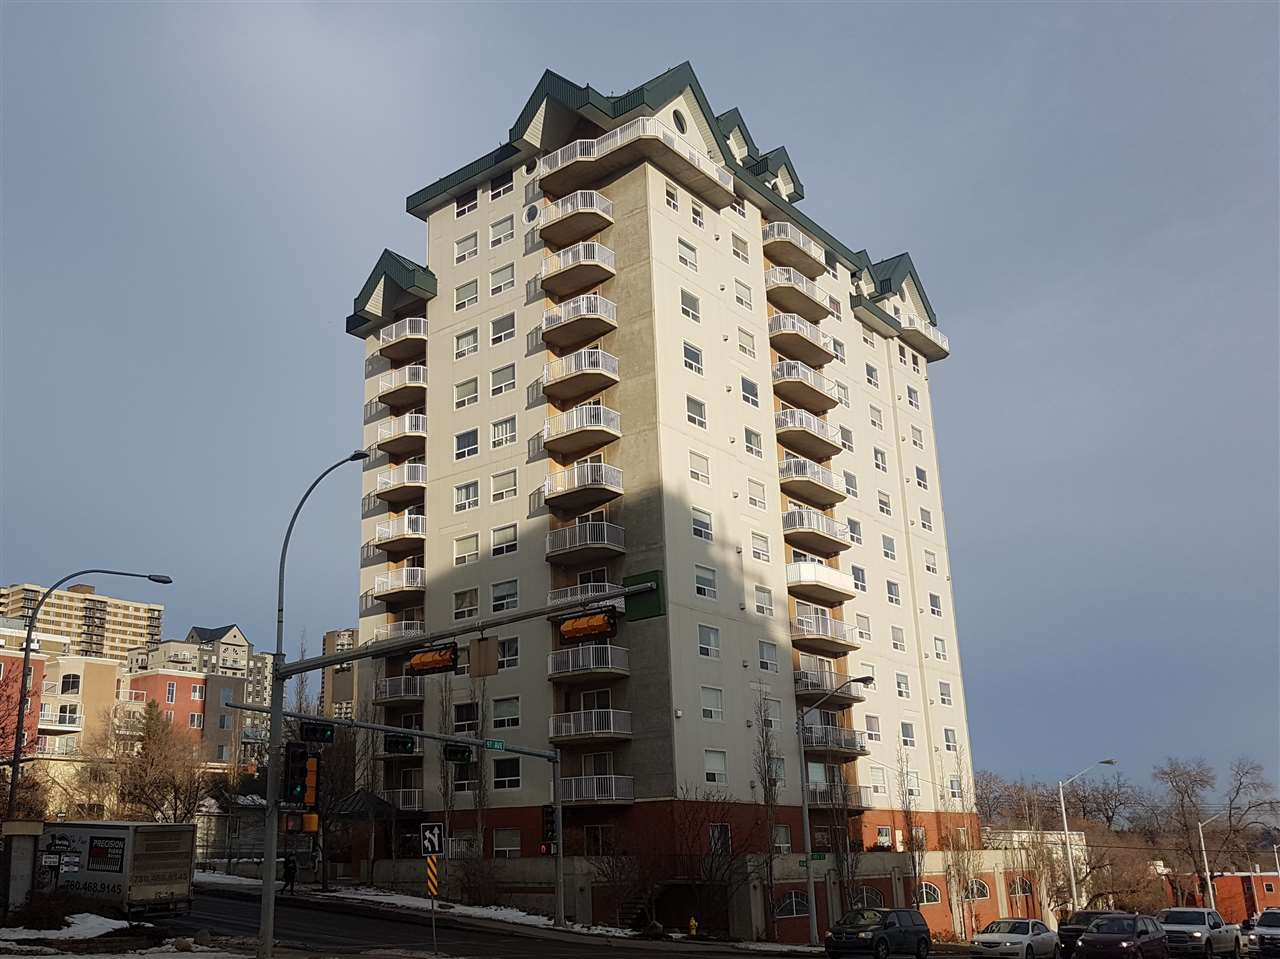 Excellent value for a corner unit in a newer concrete building with south river valley views!  Very spacious 1228 square feet seems even larger with the 9 foot ceilings.  2 bedrooms and both have walk in closets.  2 bathrooms as well, plus there is a large in suite laundry room.  The kitchen features an eating bar, ample counters and numerous cupboards.  Other features include: gas fireplace, underground titled parking stall, southeast corner balcony with gas line for bbq, large sunny windows facing south that overlook the new low level bridge, ball park and river.  The complex also has a fitness room and there are numerous visitor parking stalls for guests. 18 plus age restricted building.